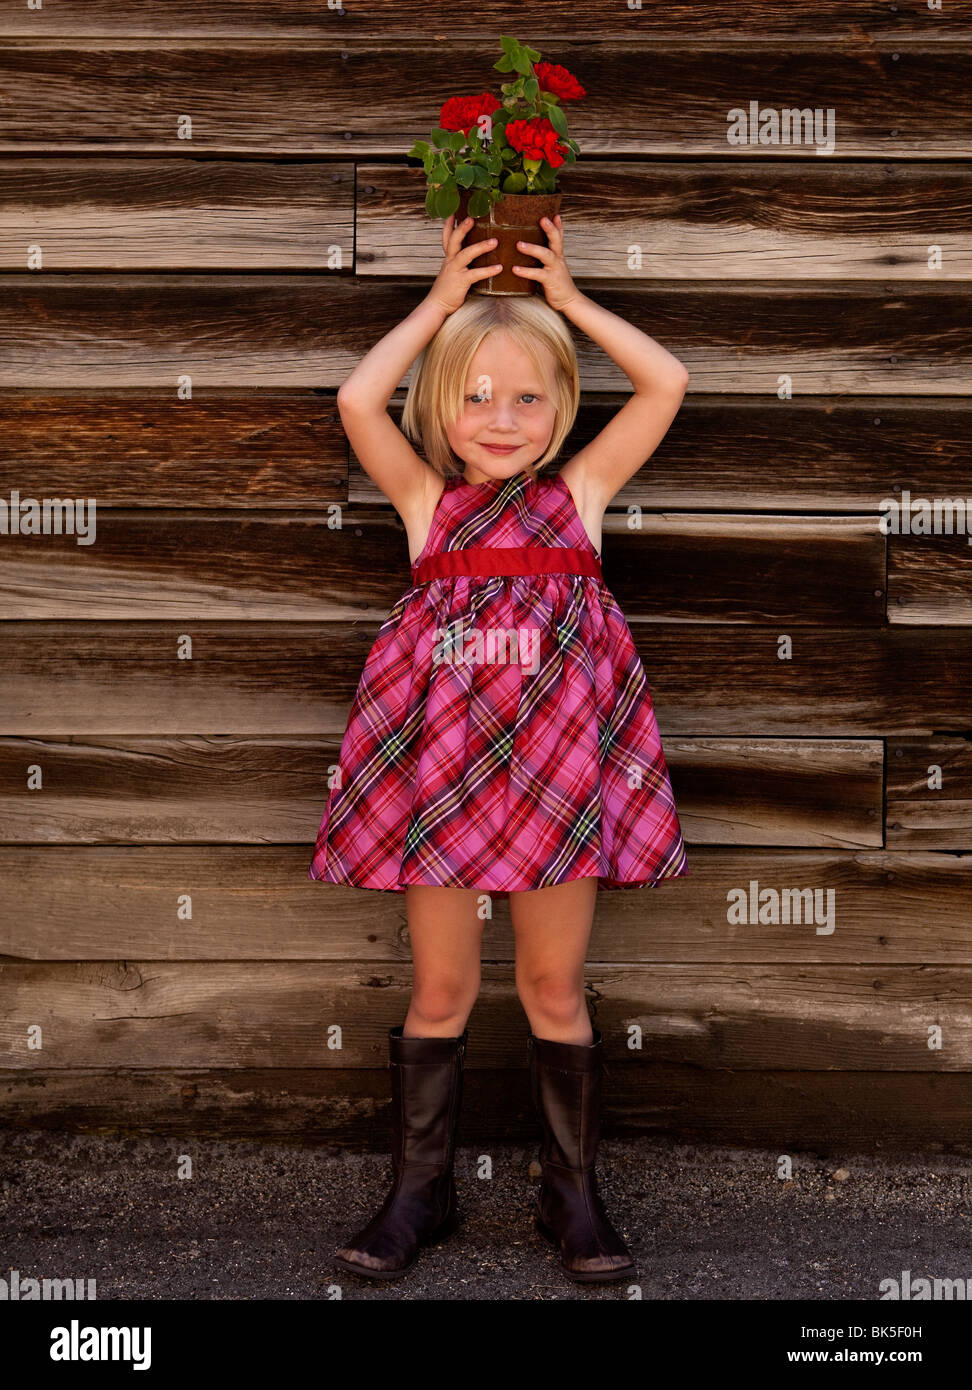 Little girl in plaid dress with potted plant on her head - Stock Image